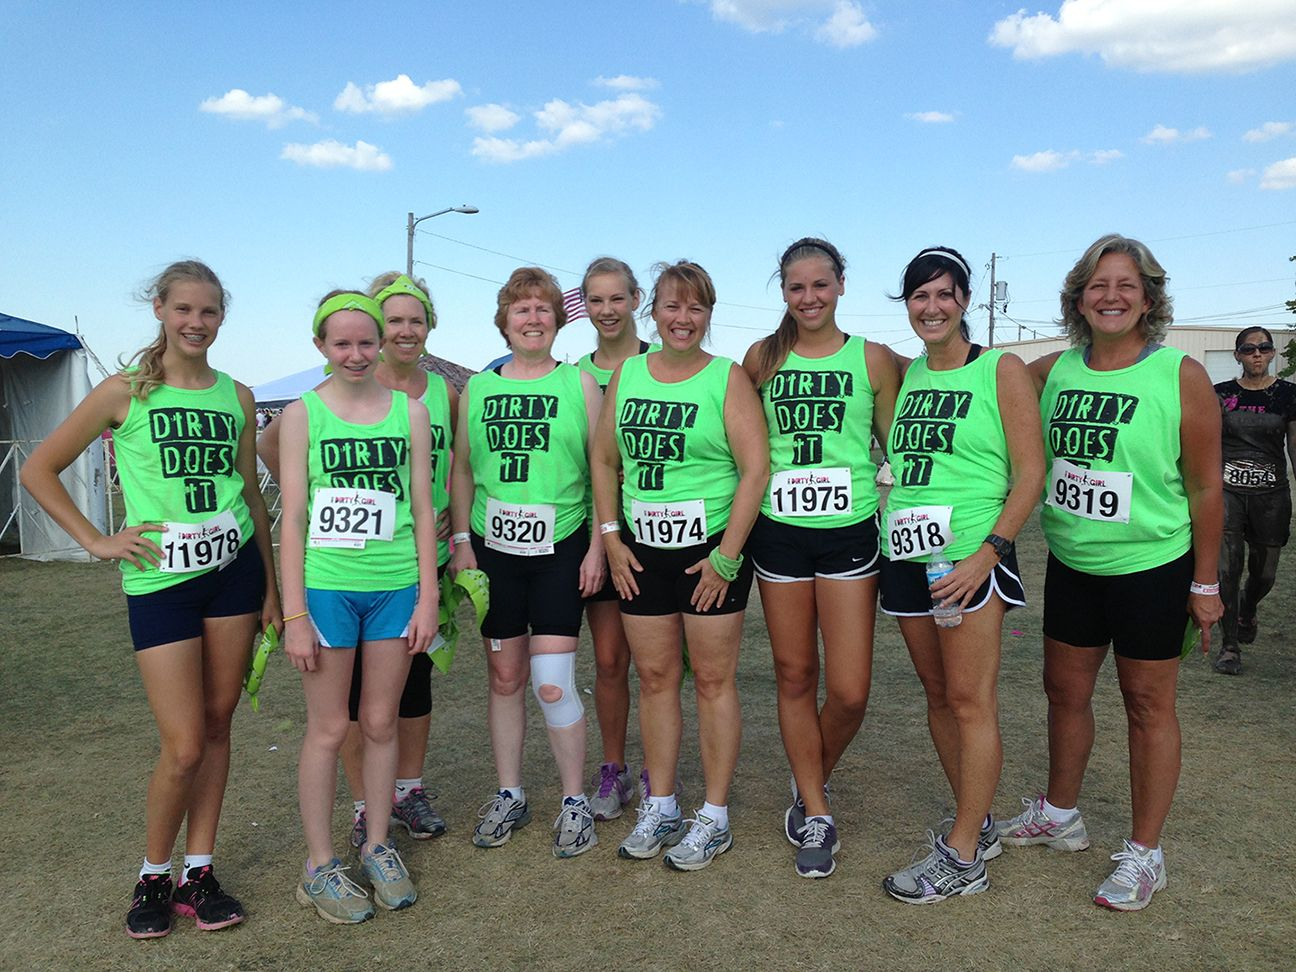 2fab3037 Did you know that mud run matching team outfits are highly encouraged?  Whether it's matching